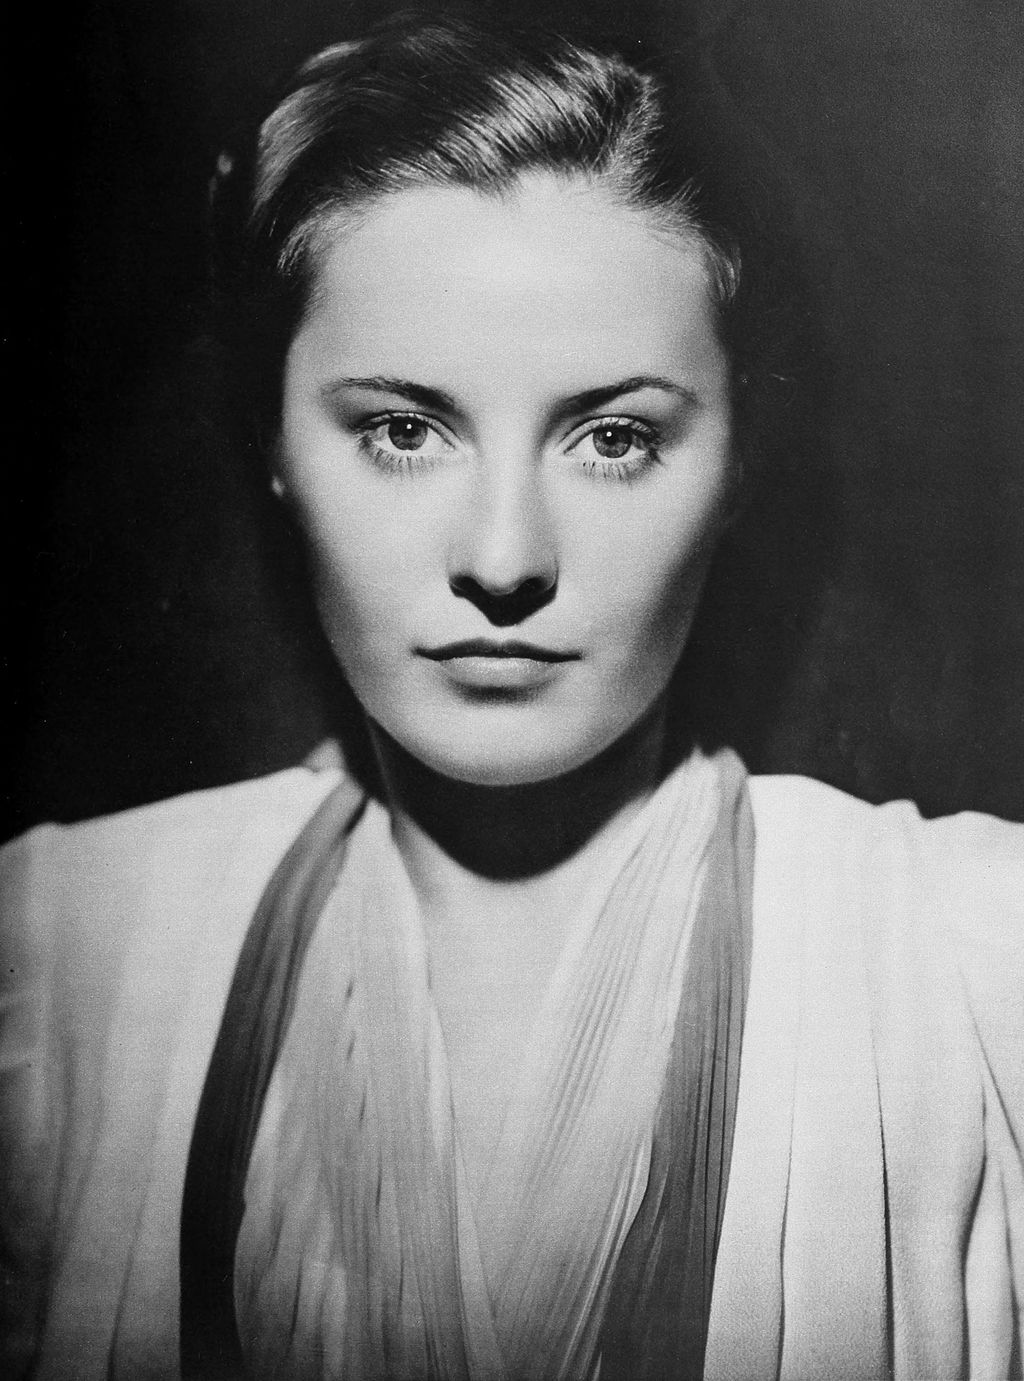 Portrait of Barbara Stanwyck by George Hurrell on June 1, 1938. | Photo: Wikimedia Commons